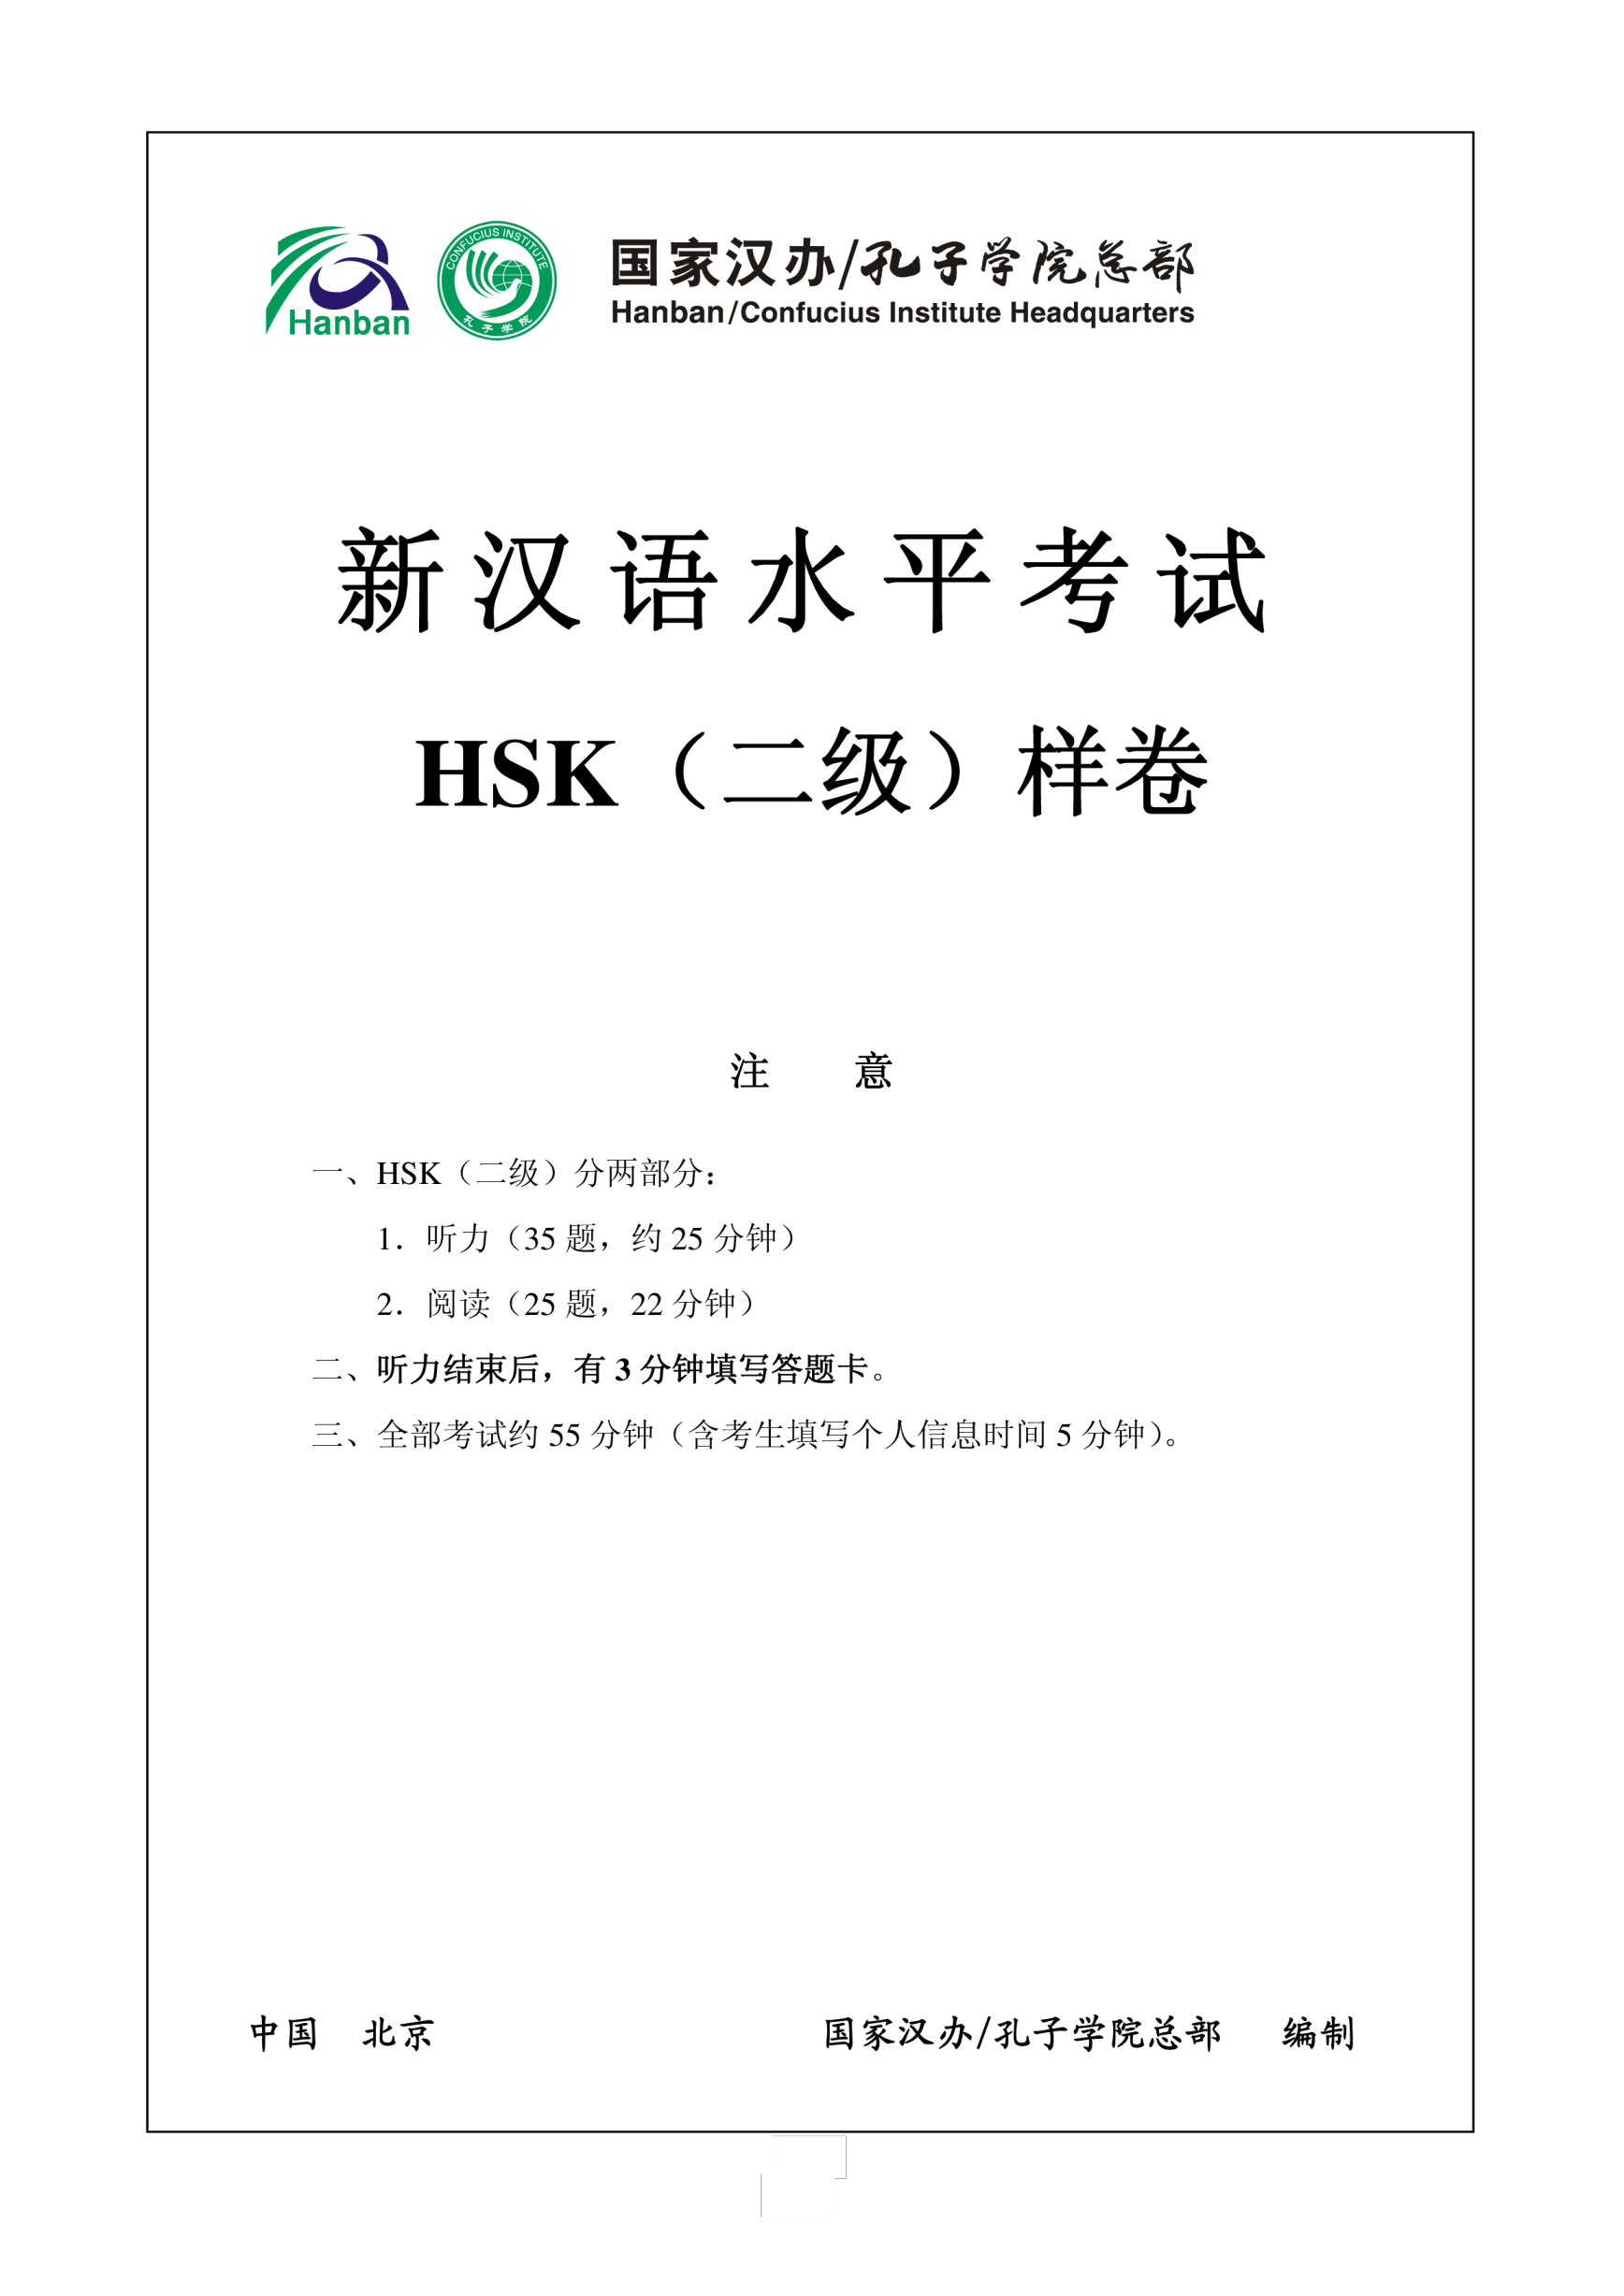 template preview imageHSK2 Chinese Exam including Answers # HSK2 2-1